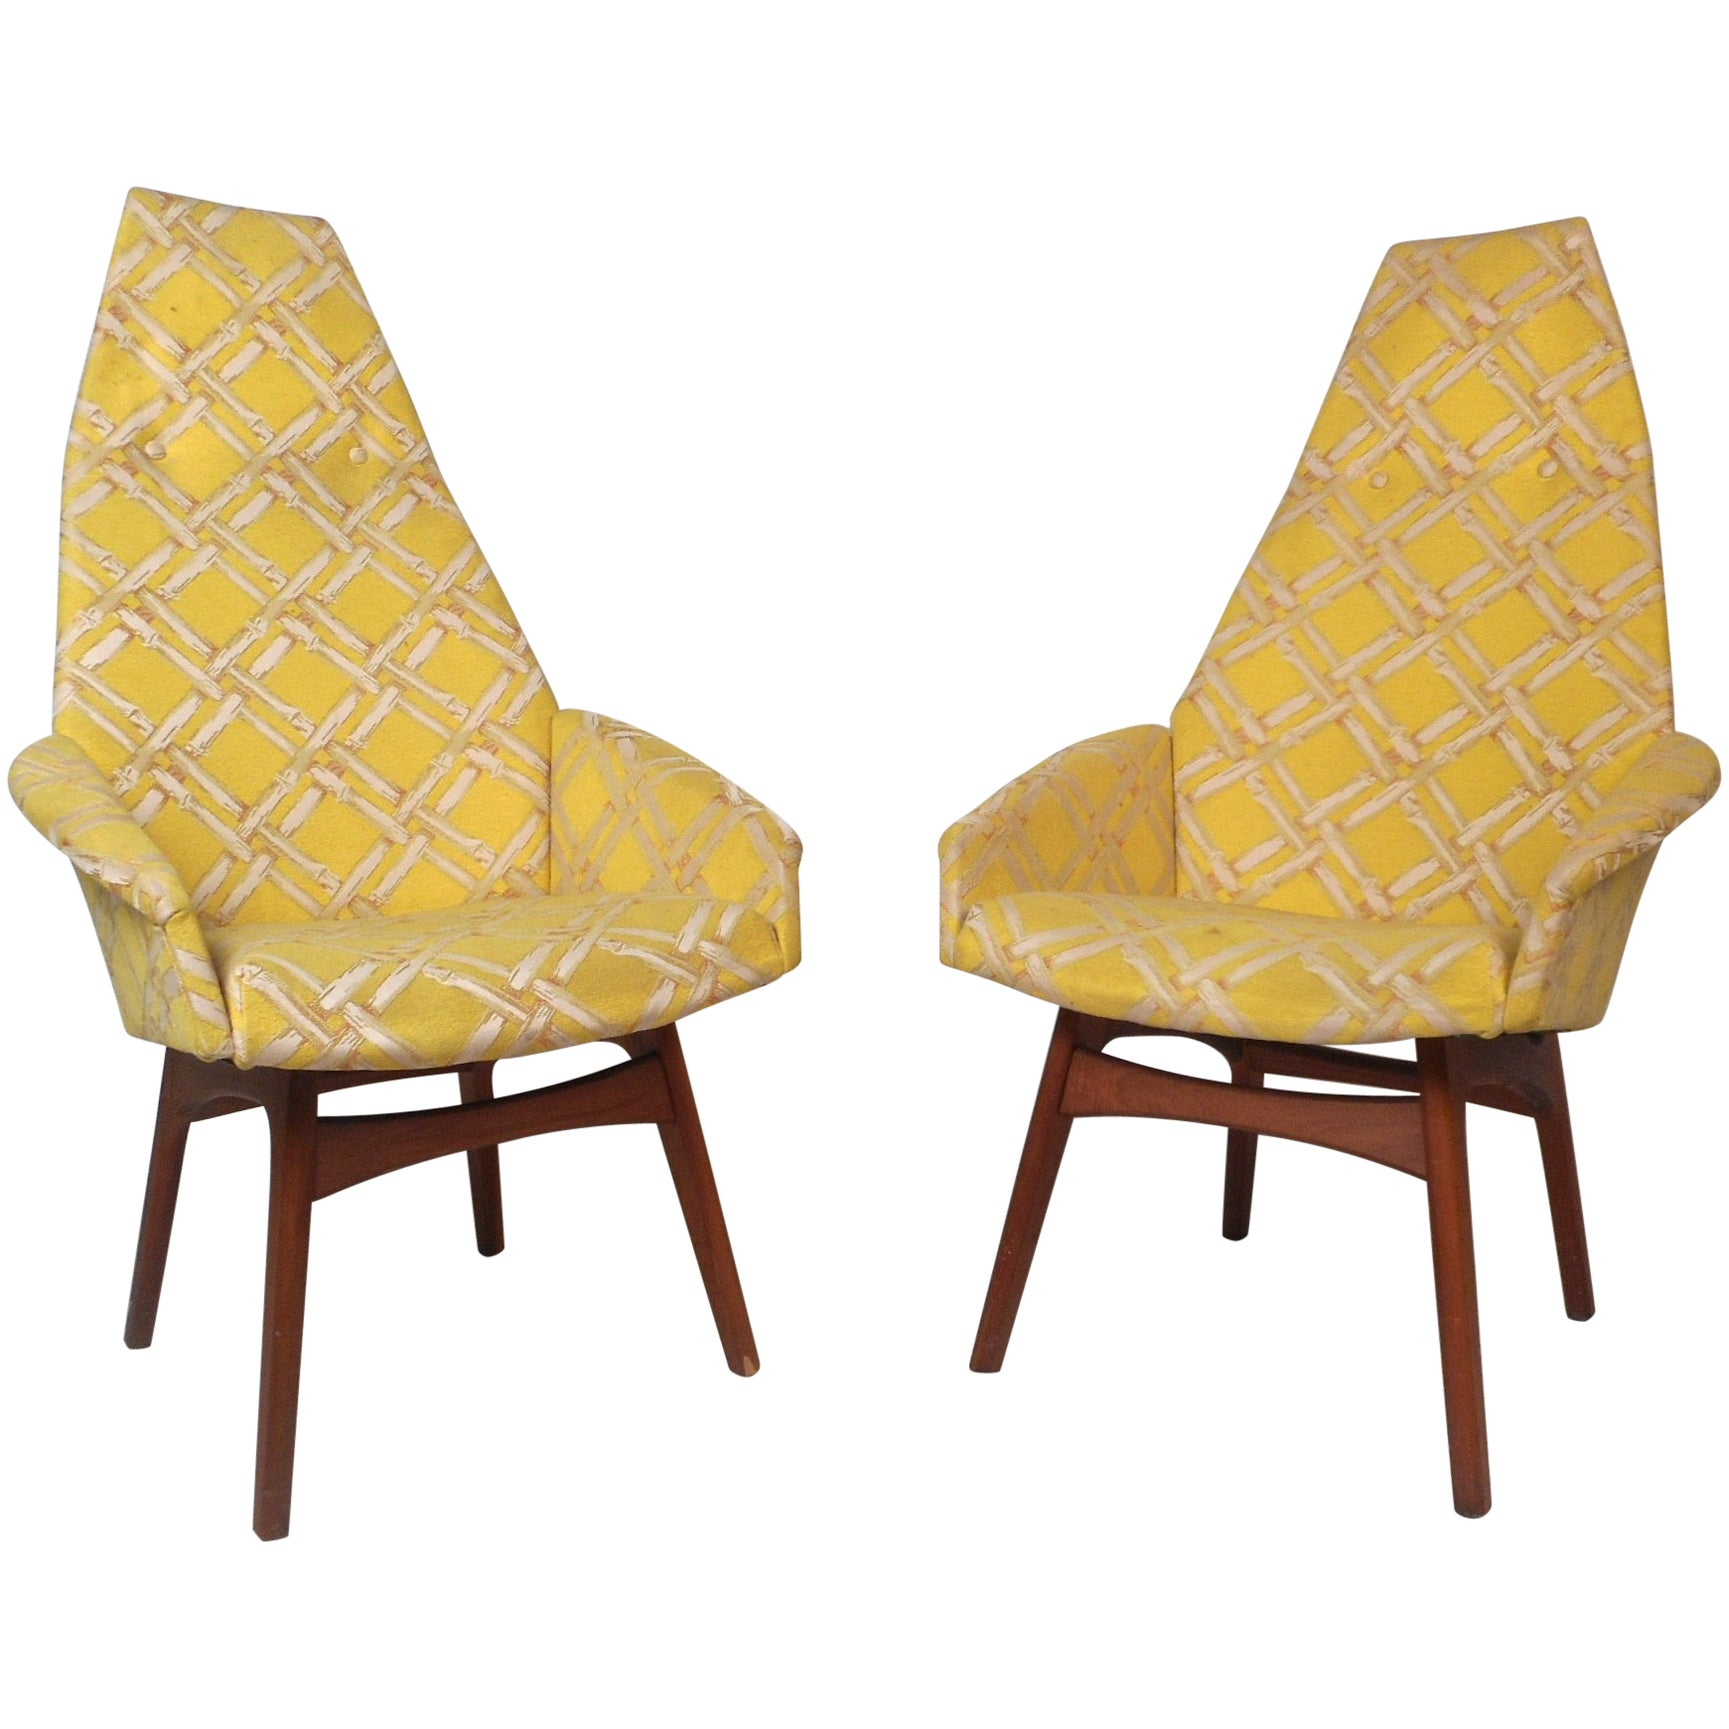 Pair of Mid-Century Modern Adrian Pearsall Style Lounge Chairs